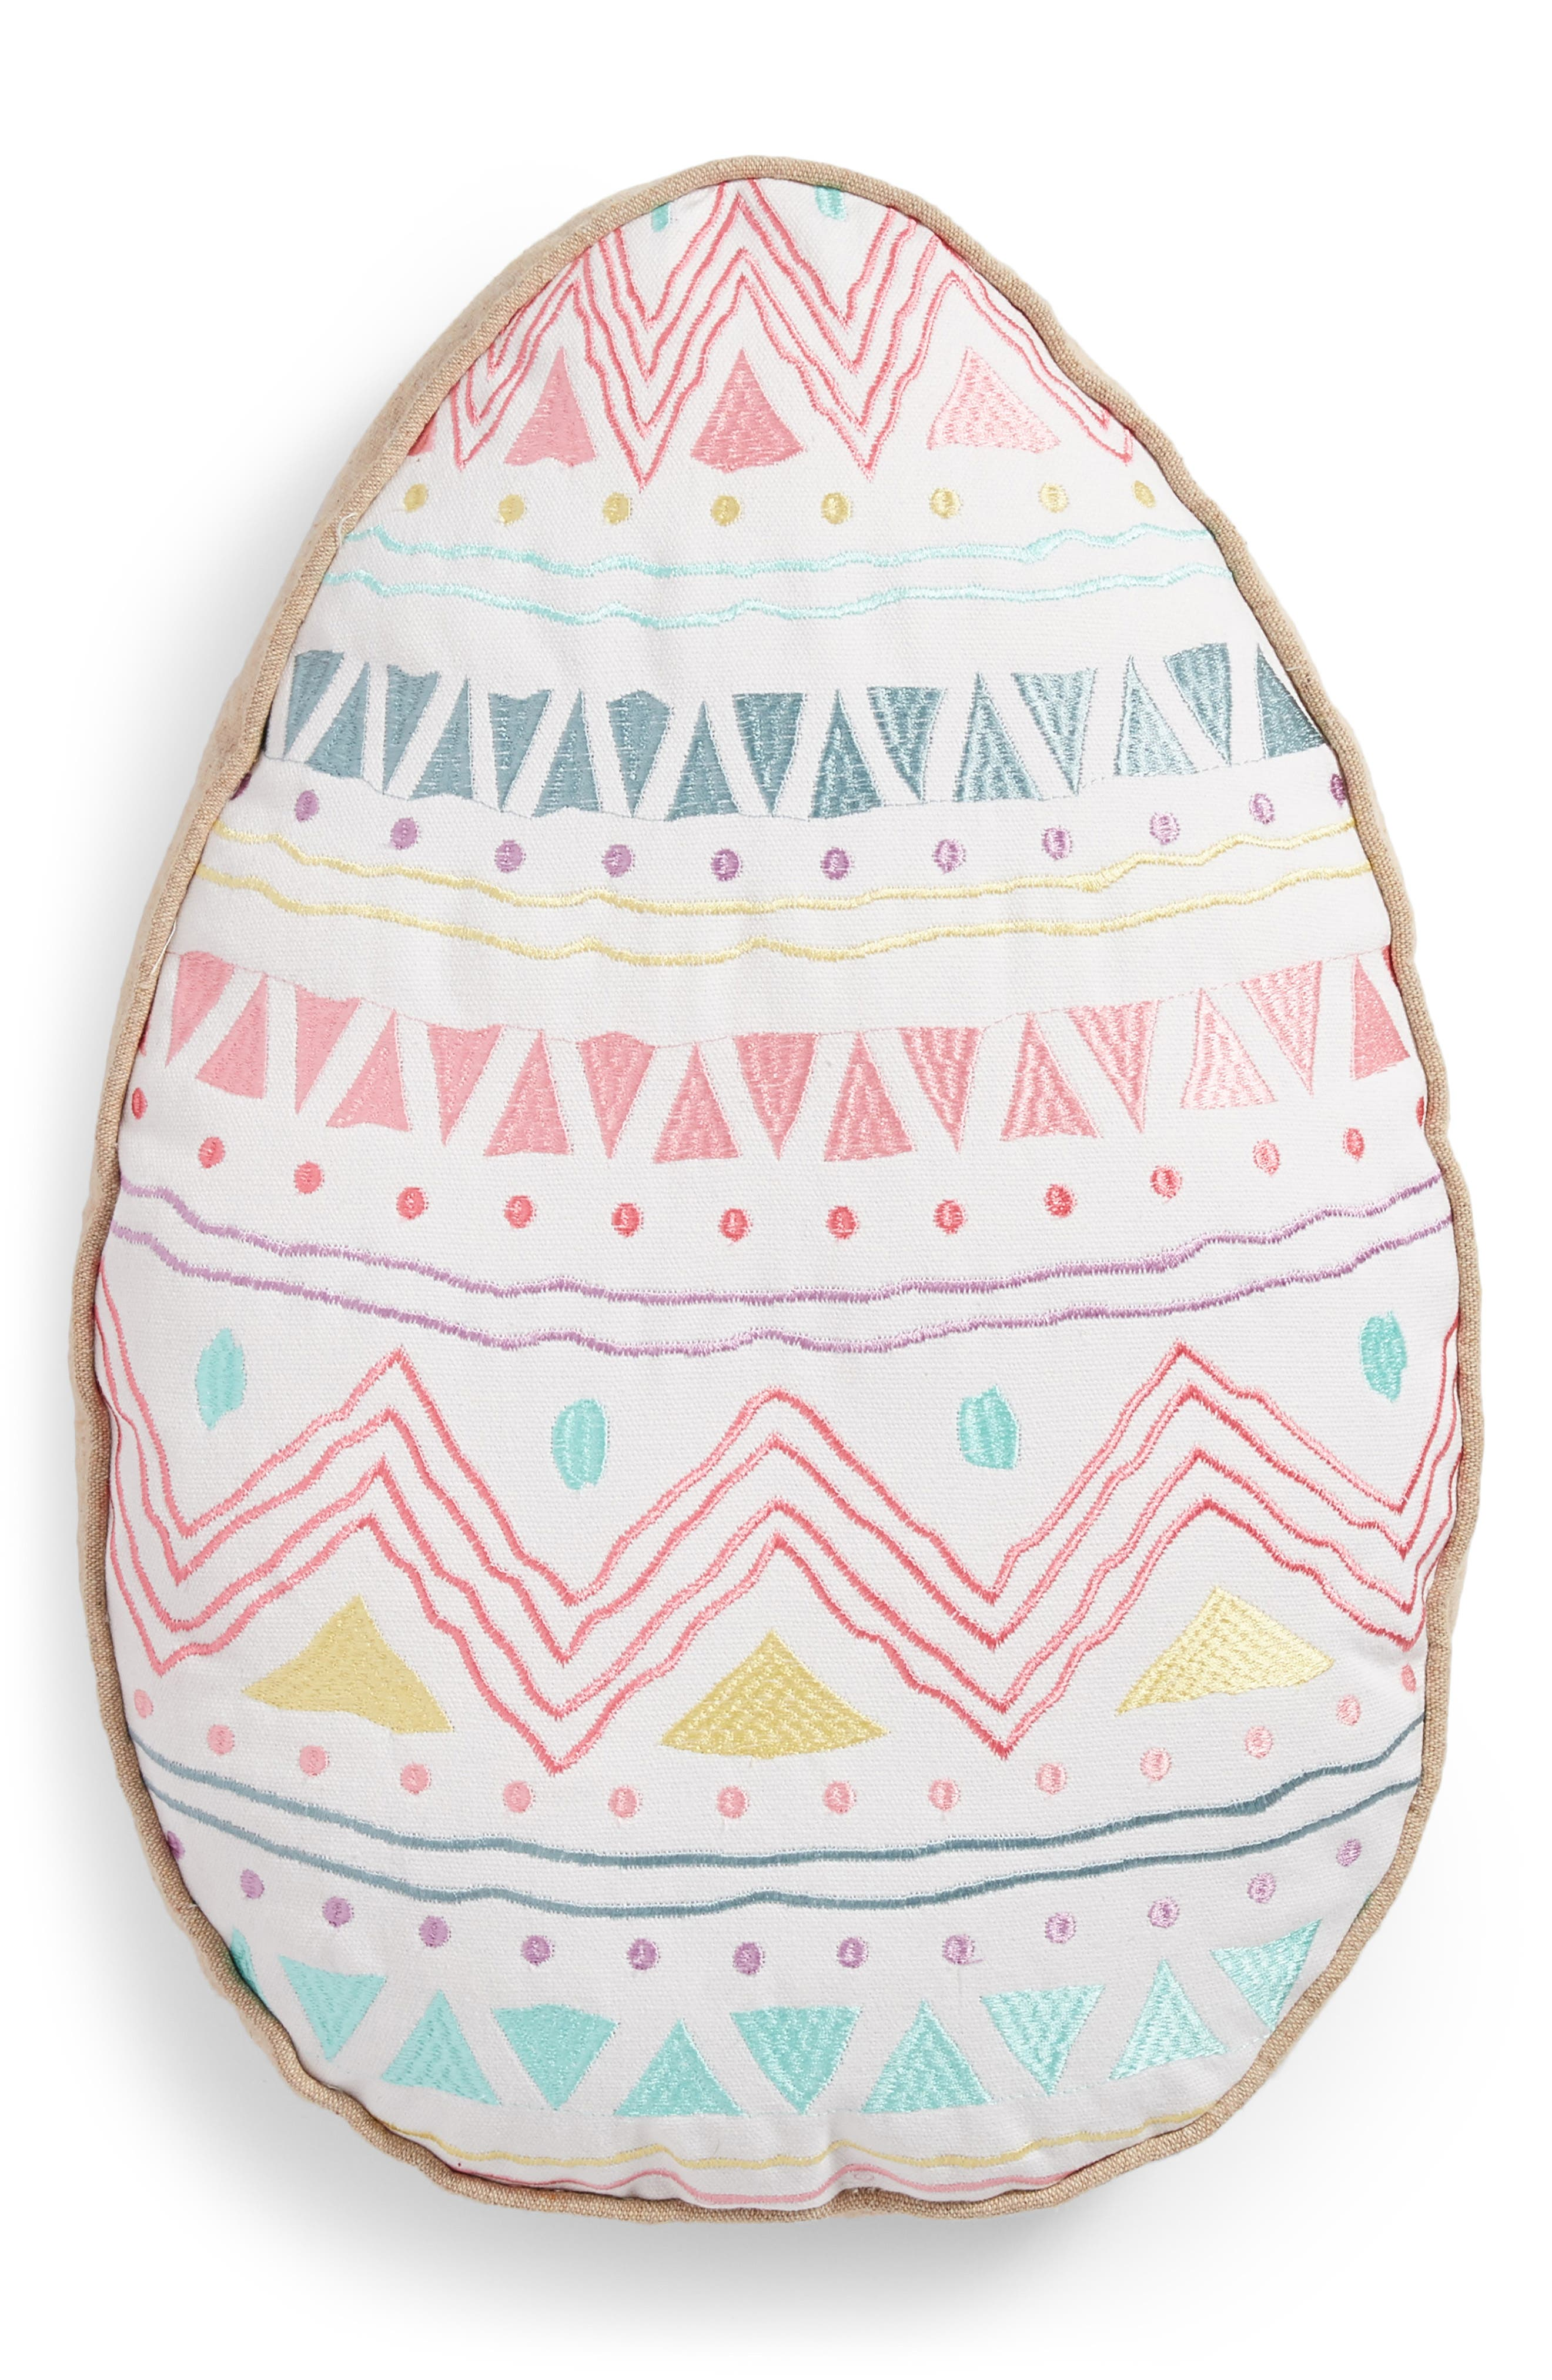 Egg Accent Pillow,                         Main,                         color, White